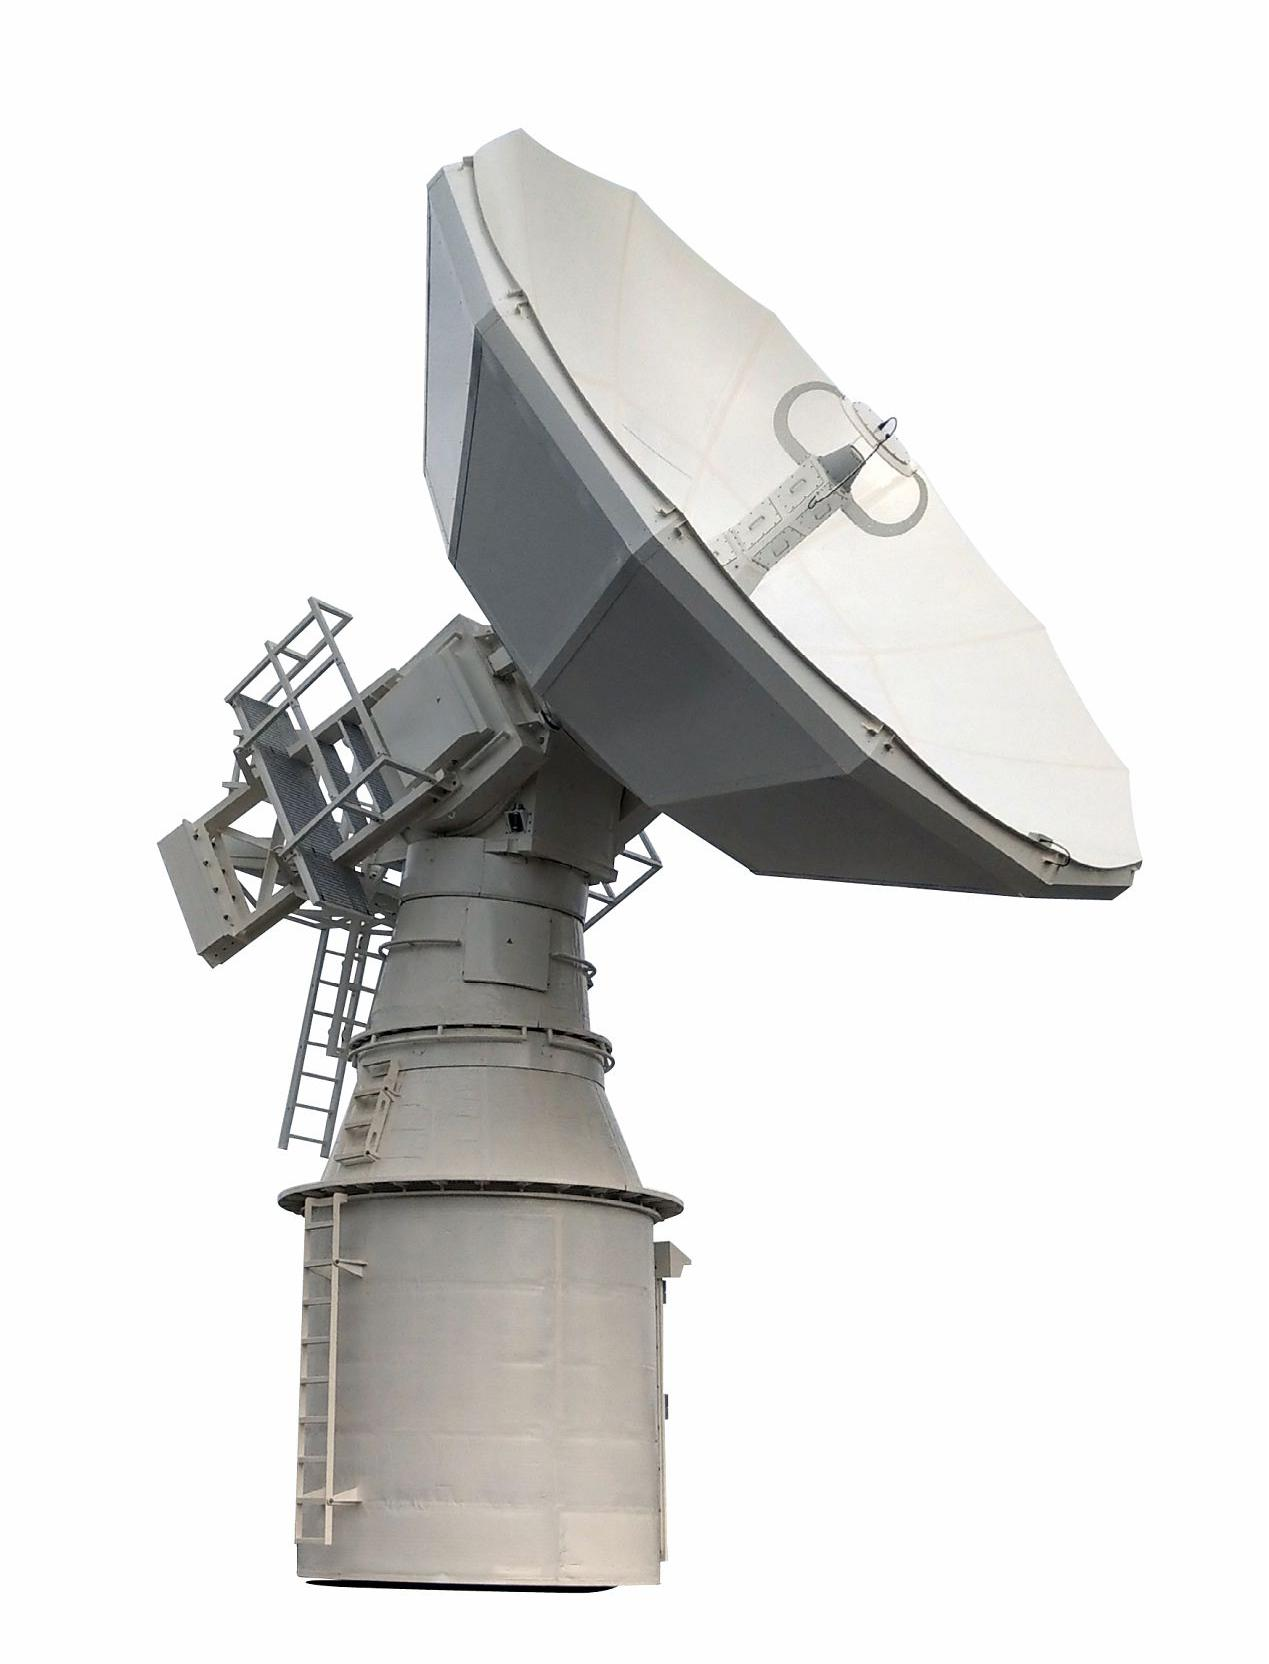 Turnkey satellite tracking systems ready for existing and next generation satellites S/X/Ka-band: ORION Series